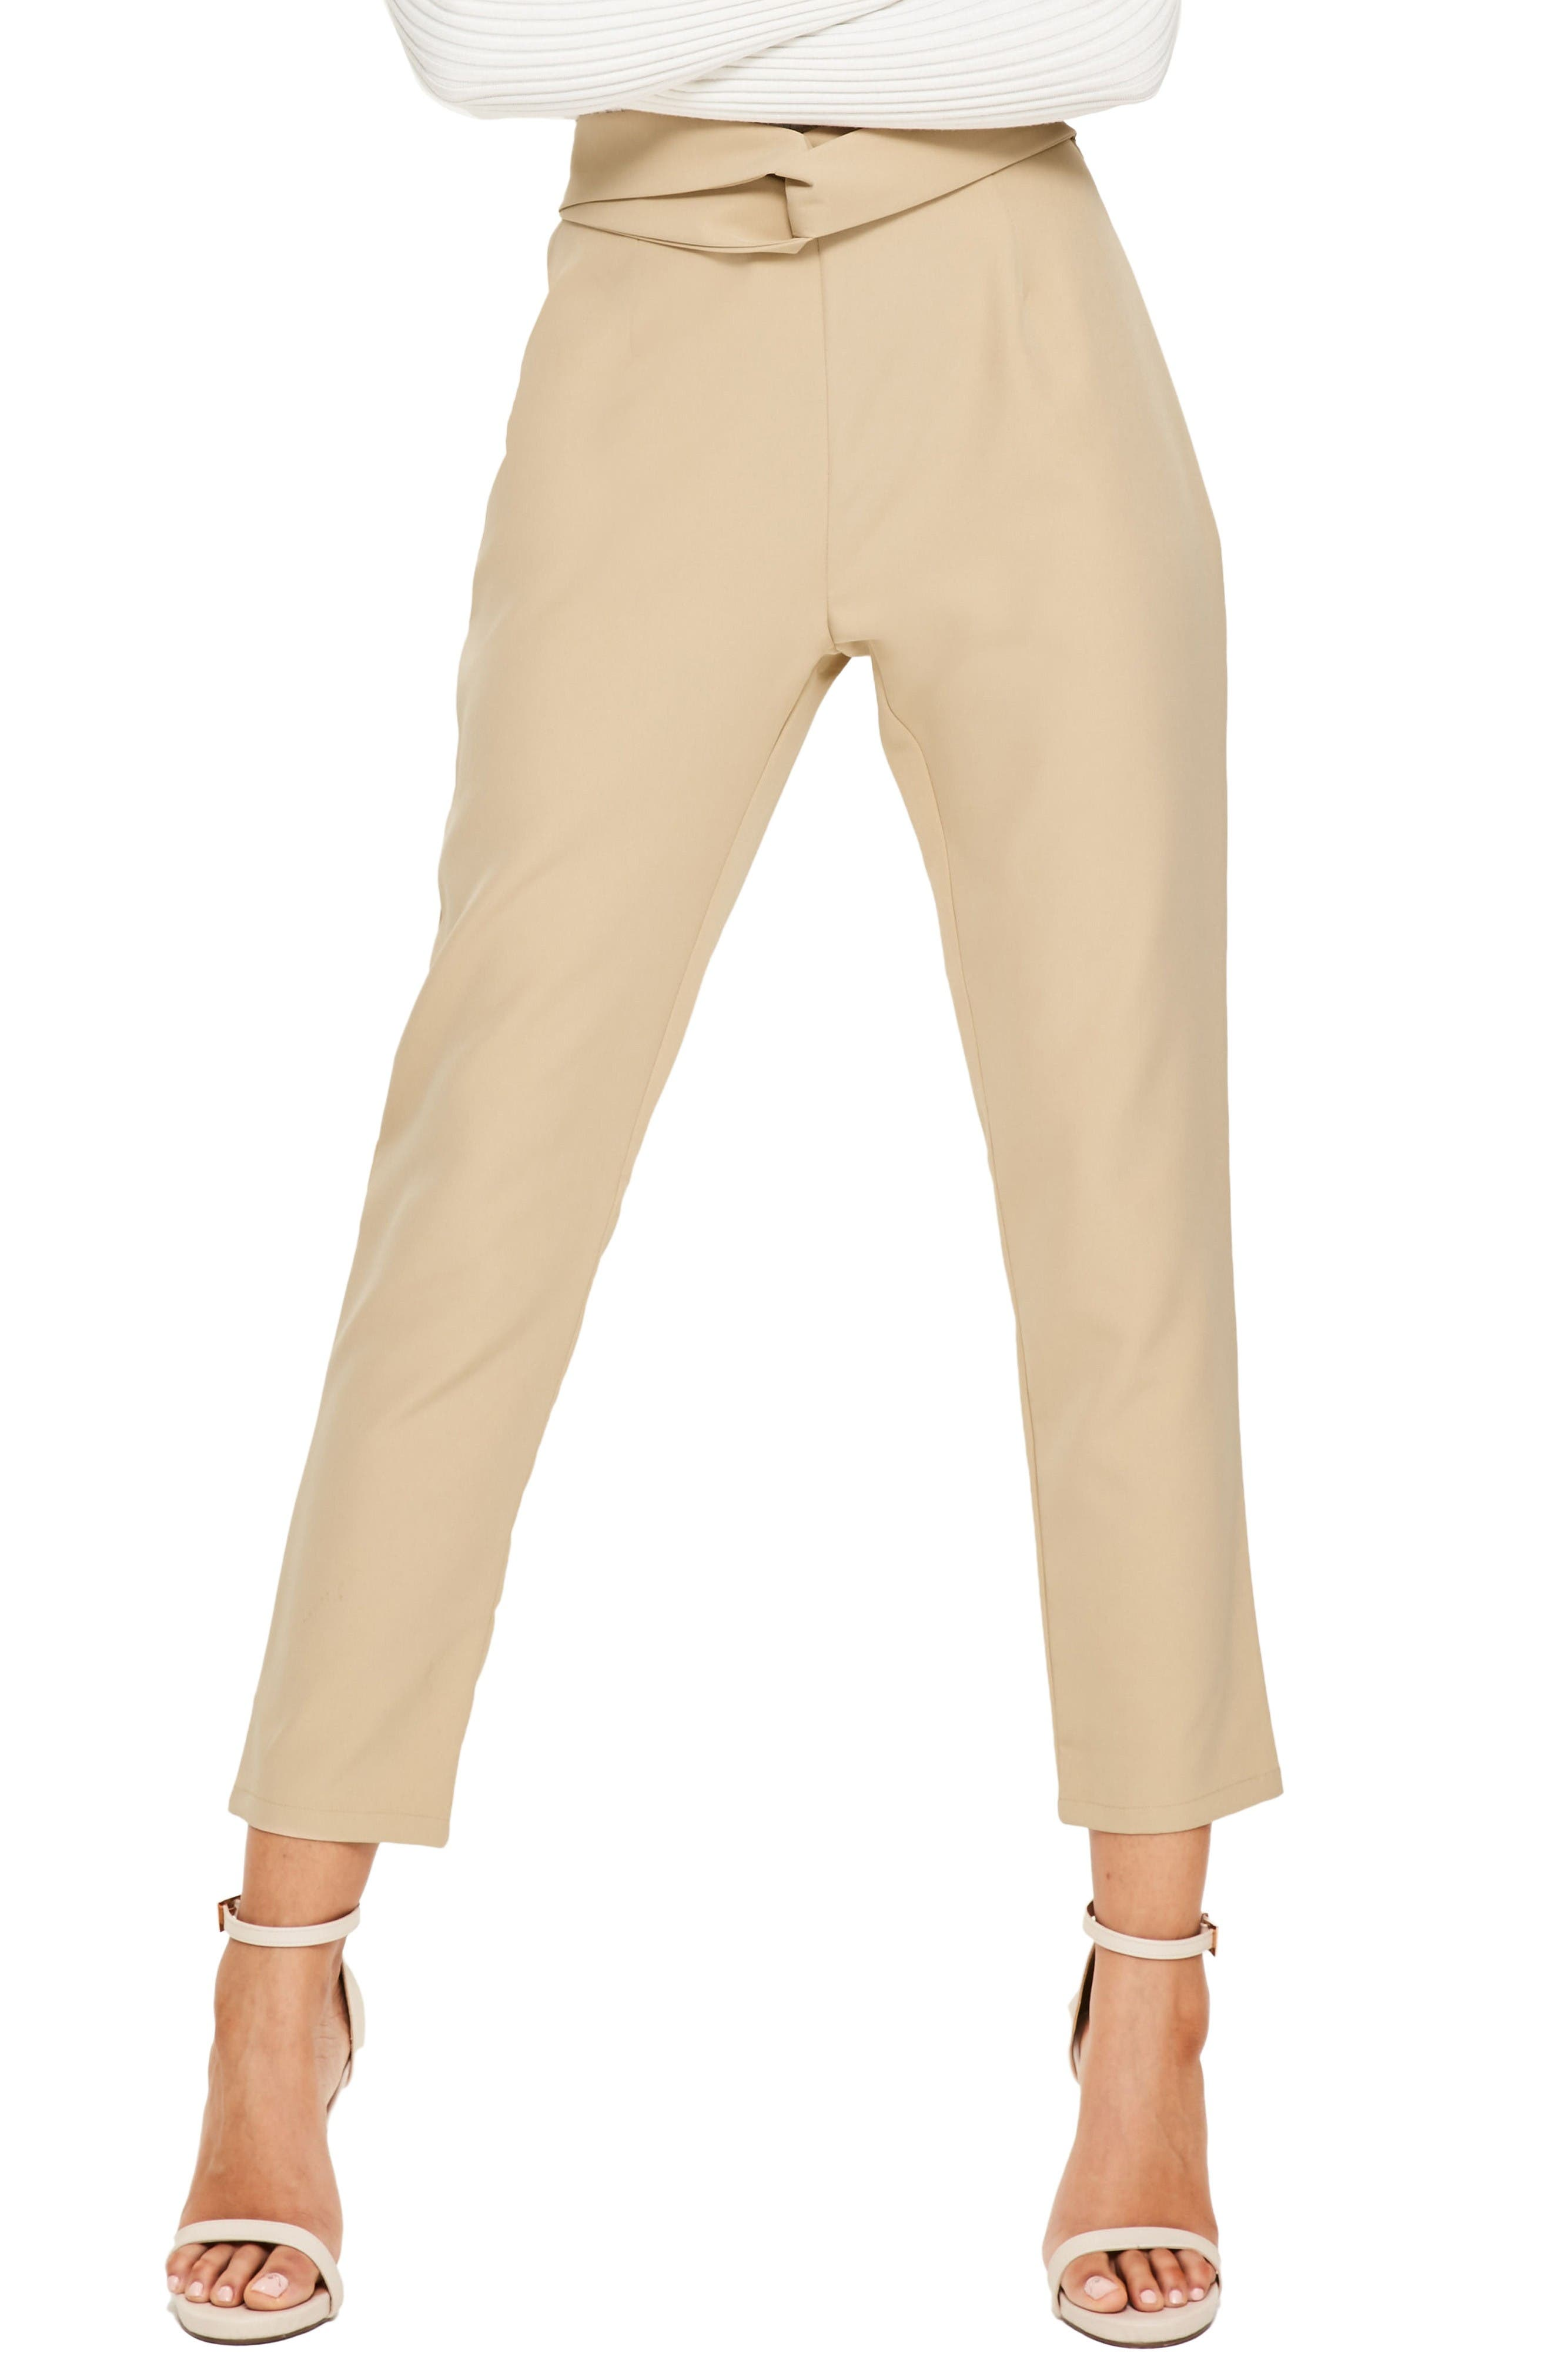 Main Image - Missguided Cigarette Trousers